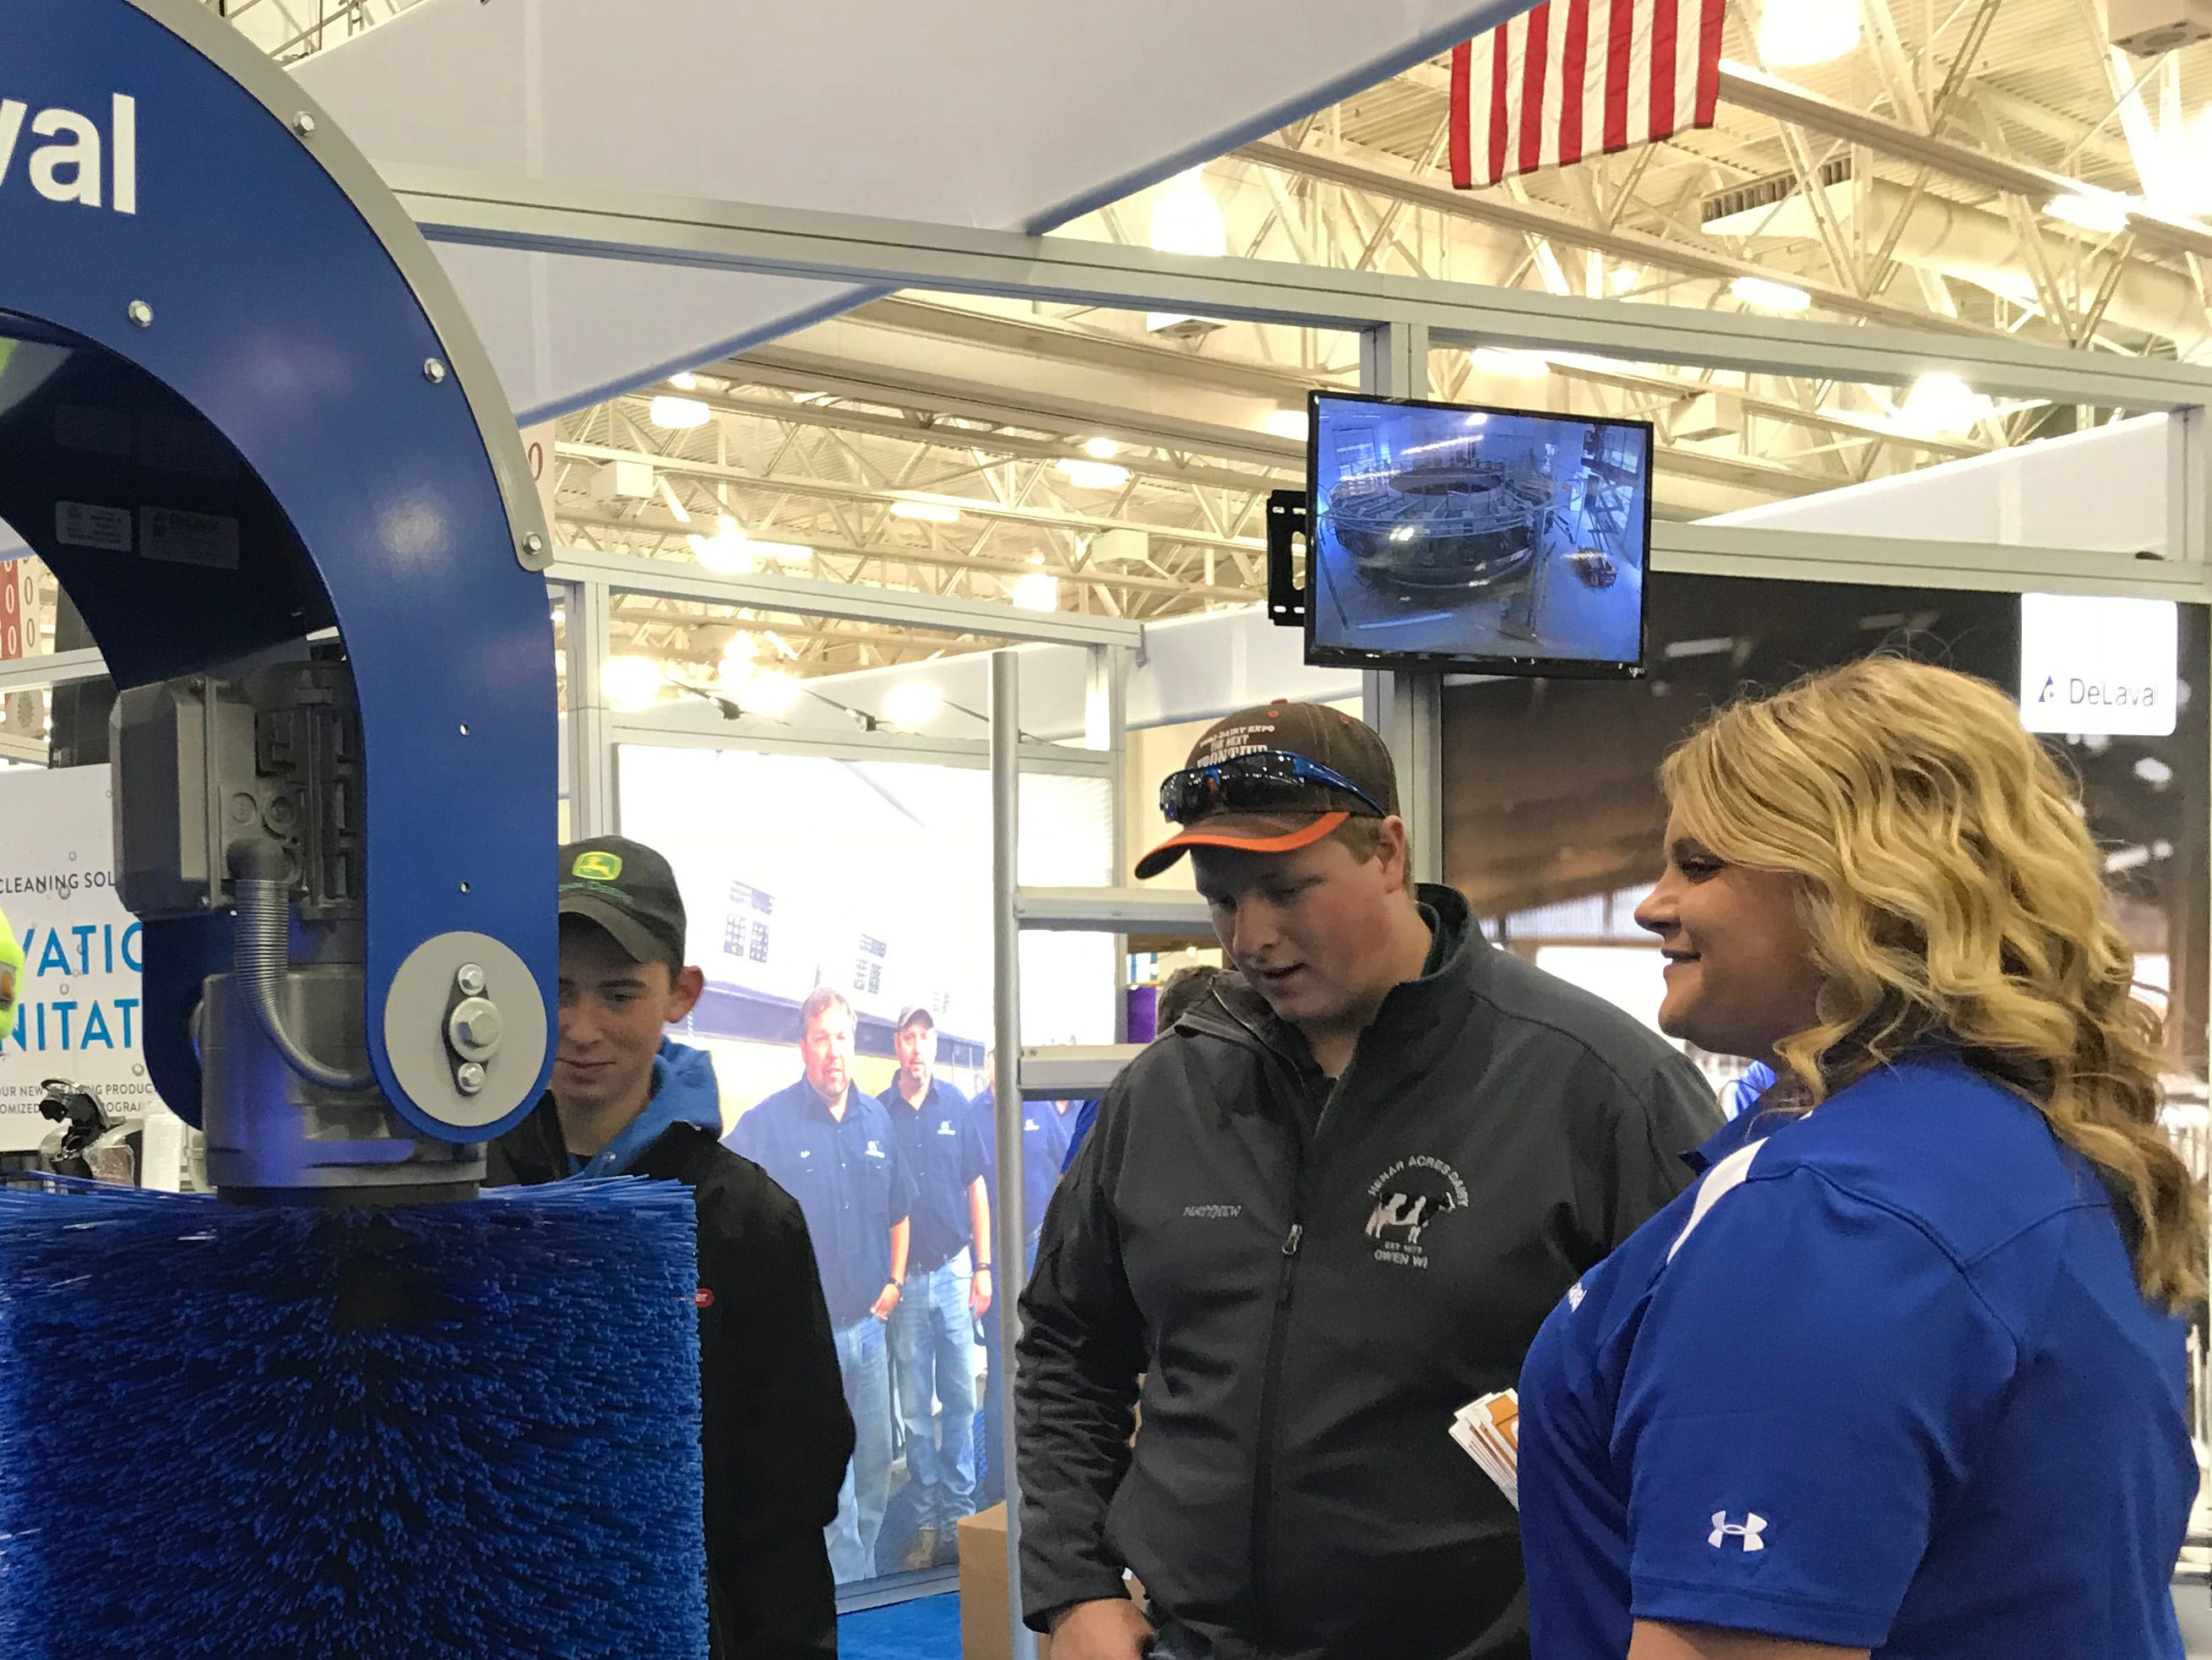 Checking out cow comfort equipment at a DeLaval exhibit.